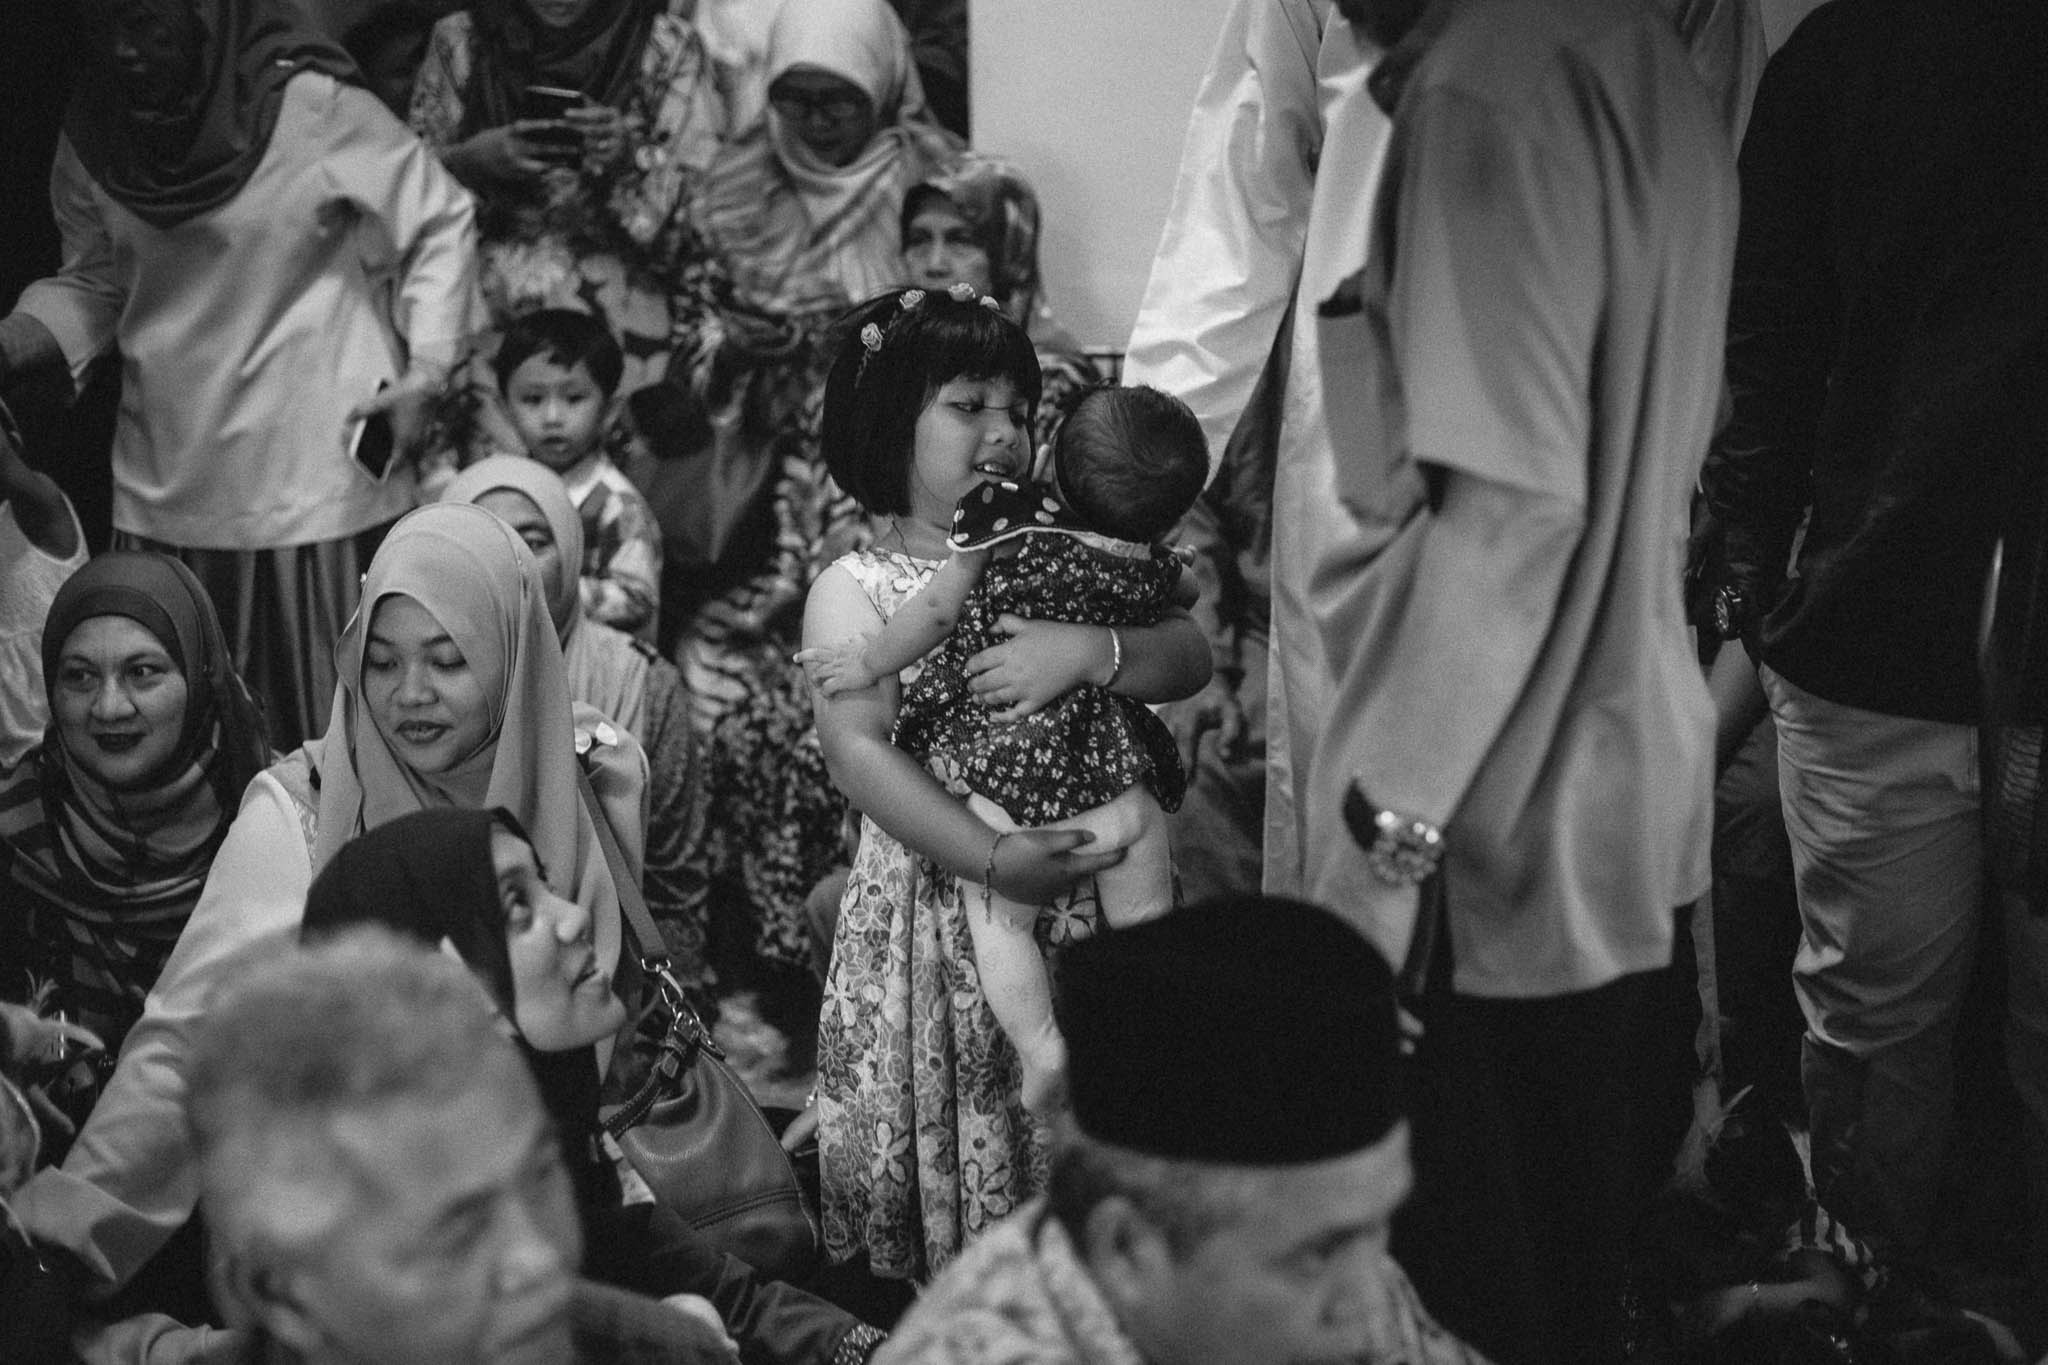 singapore-wedding-photographer-we-made-these-2016-selects-027.jpg